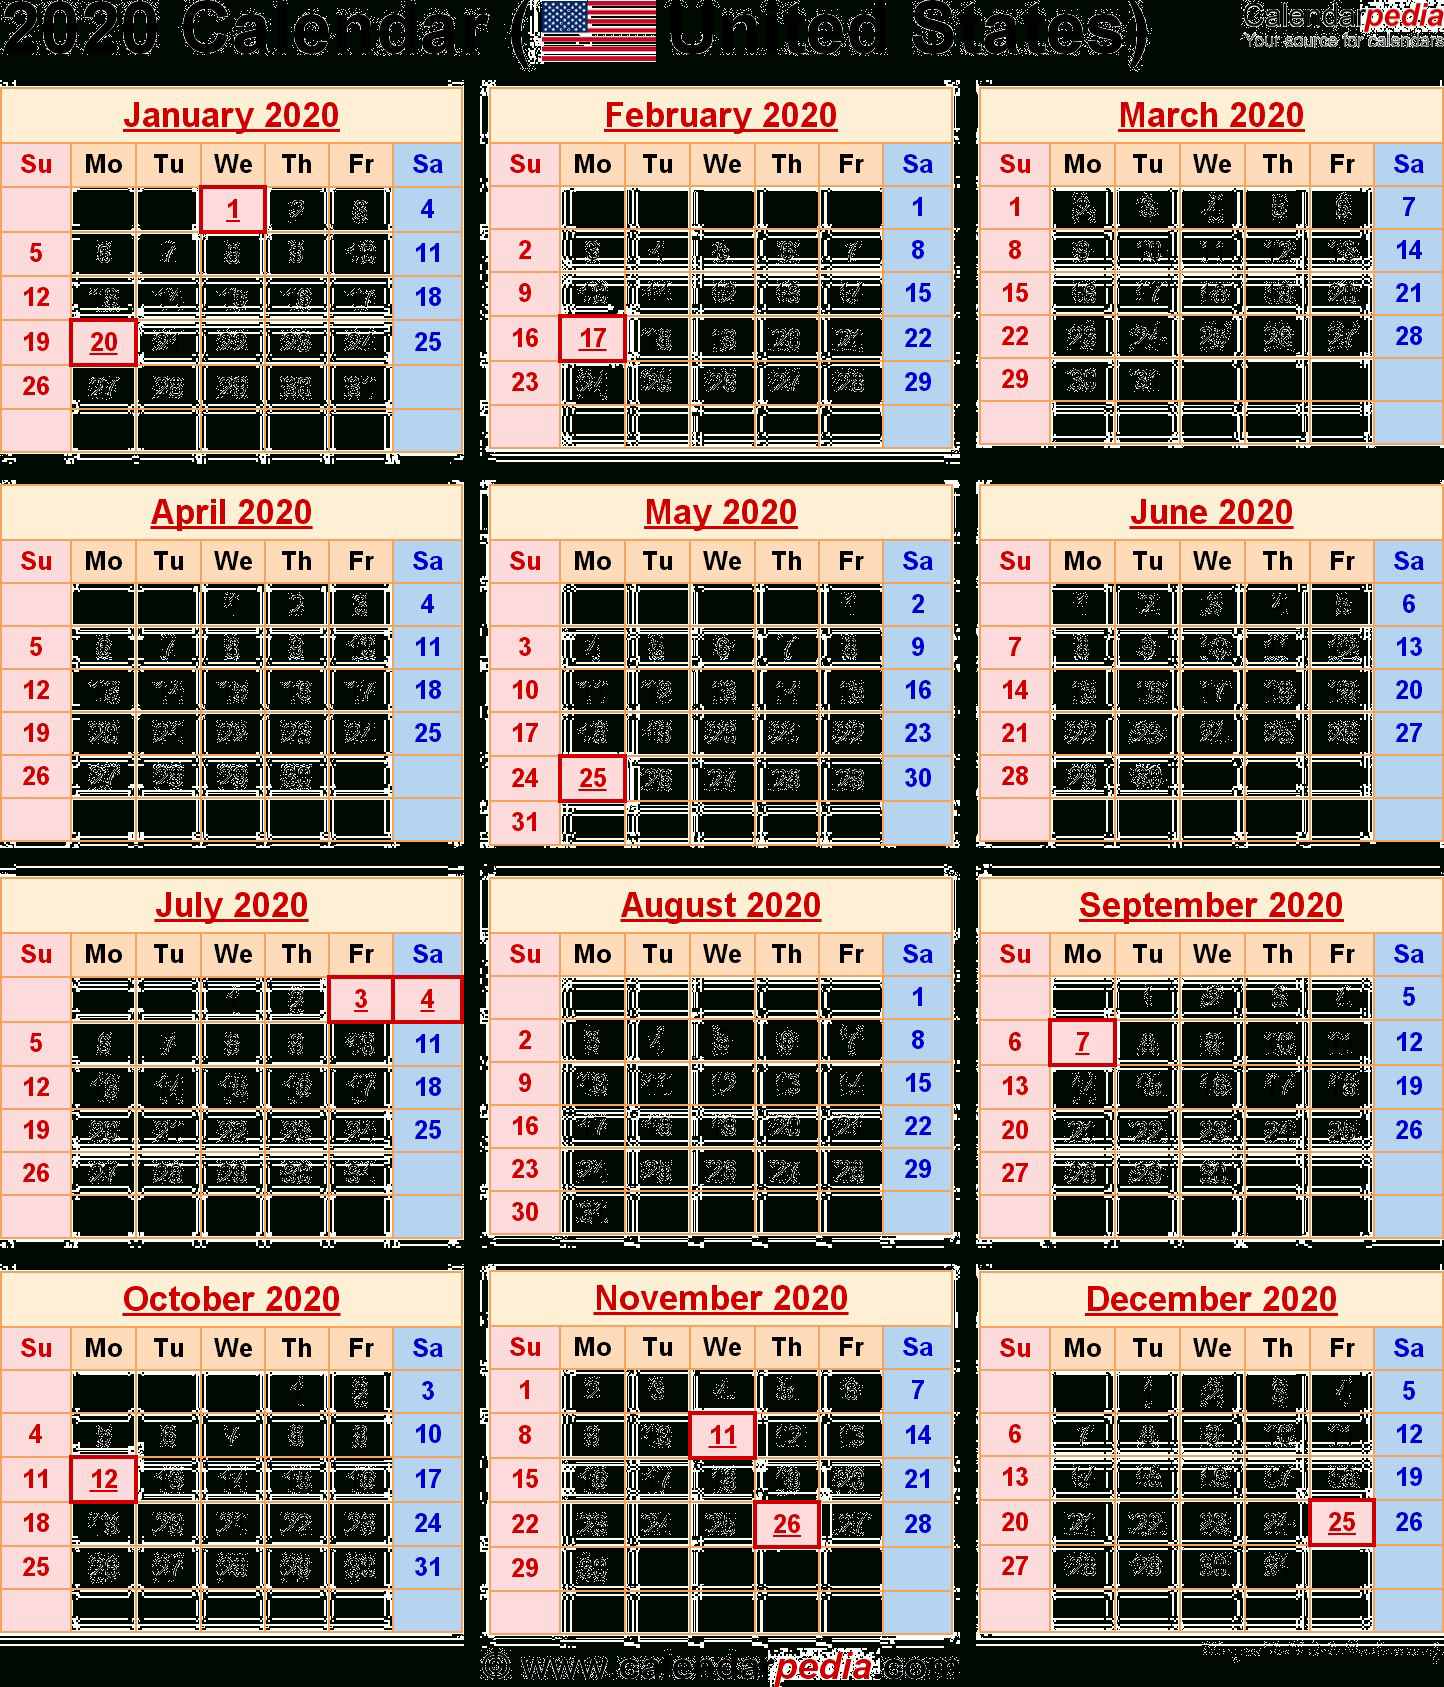 2020 Calendar Png Transparent Images | Png All within Bihar Government Calender 2020